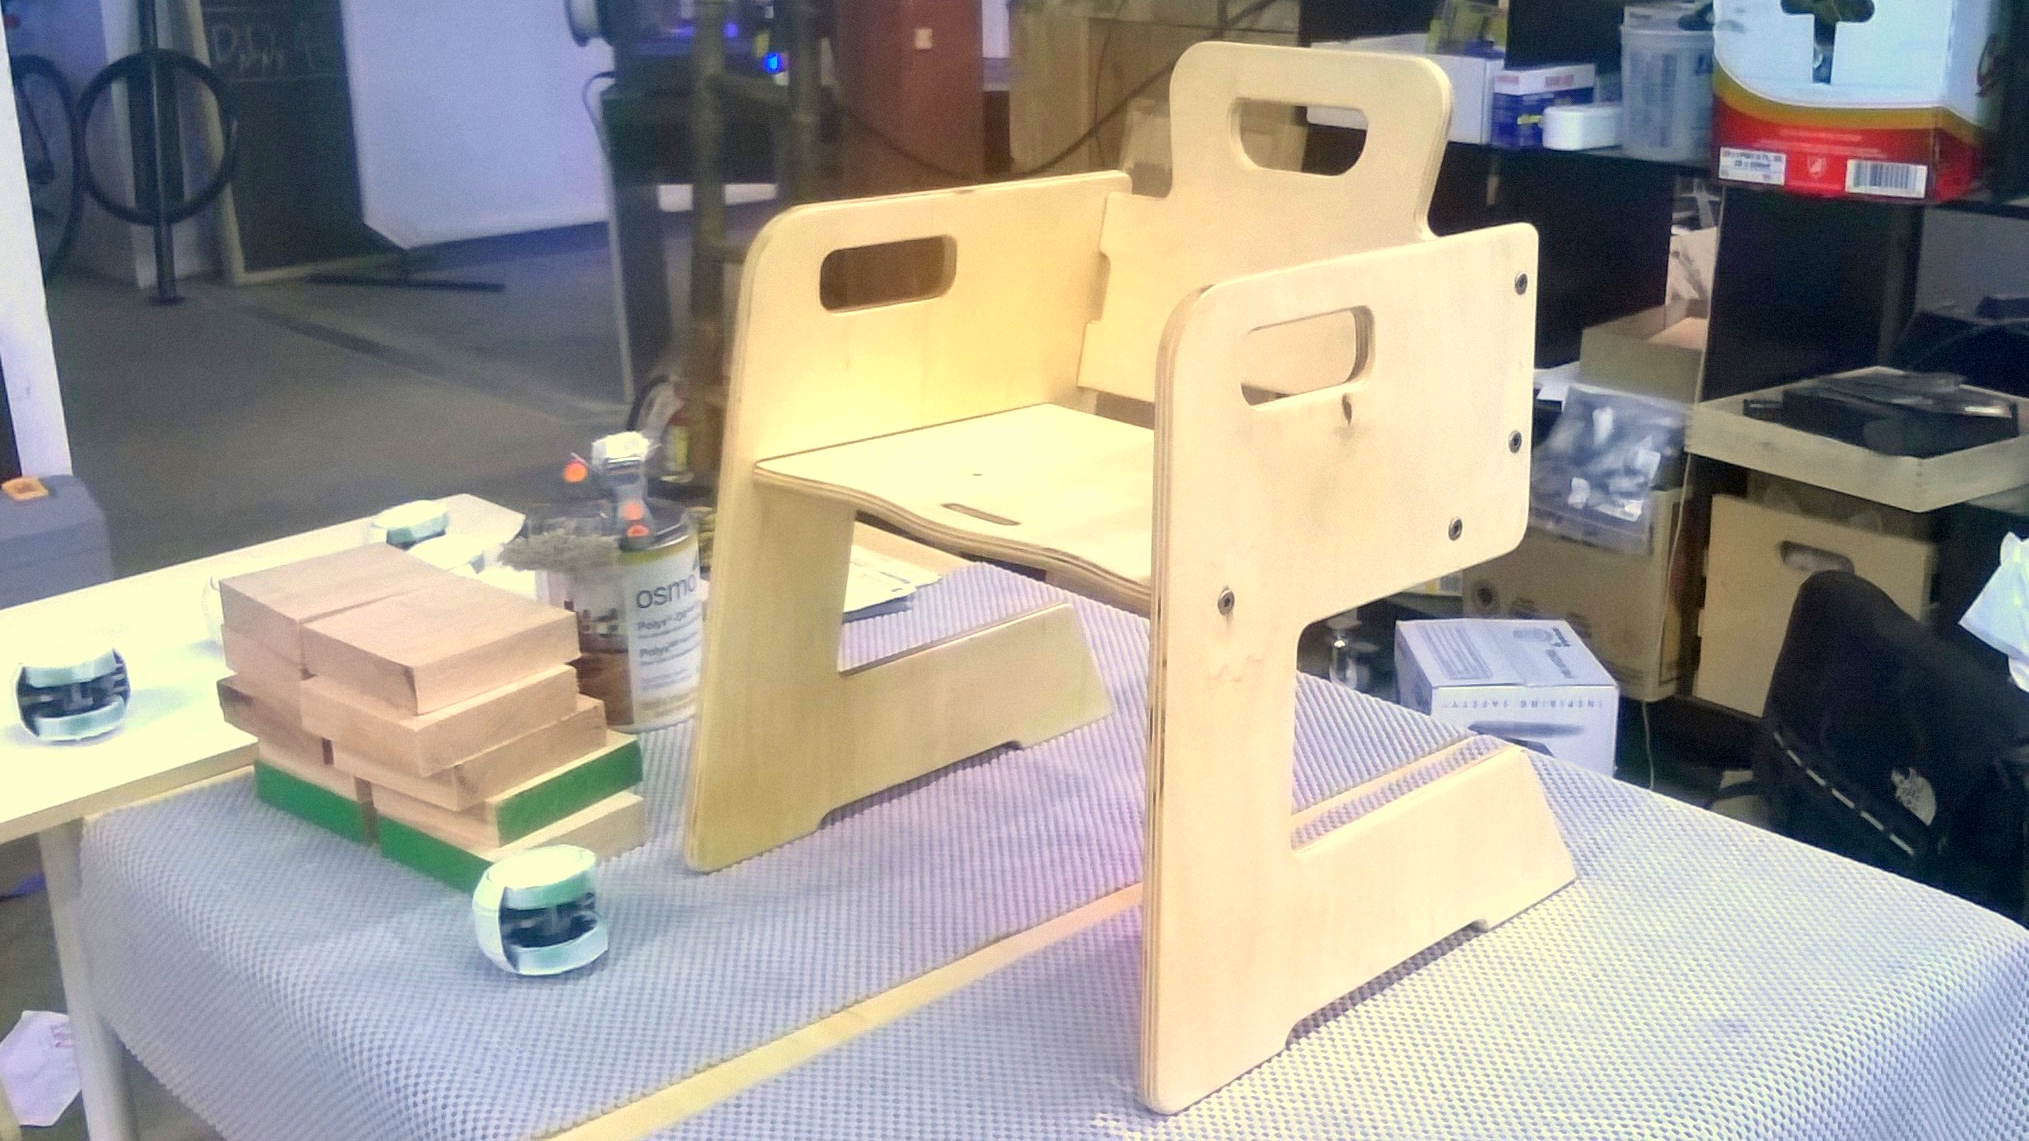 Larry Chair - Prototyping Stage 1